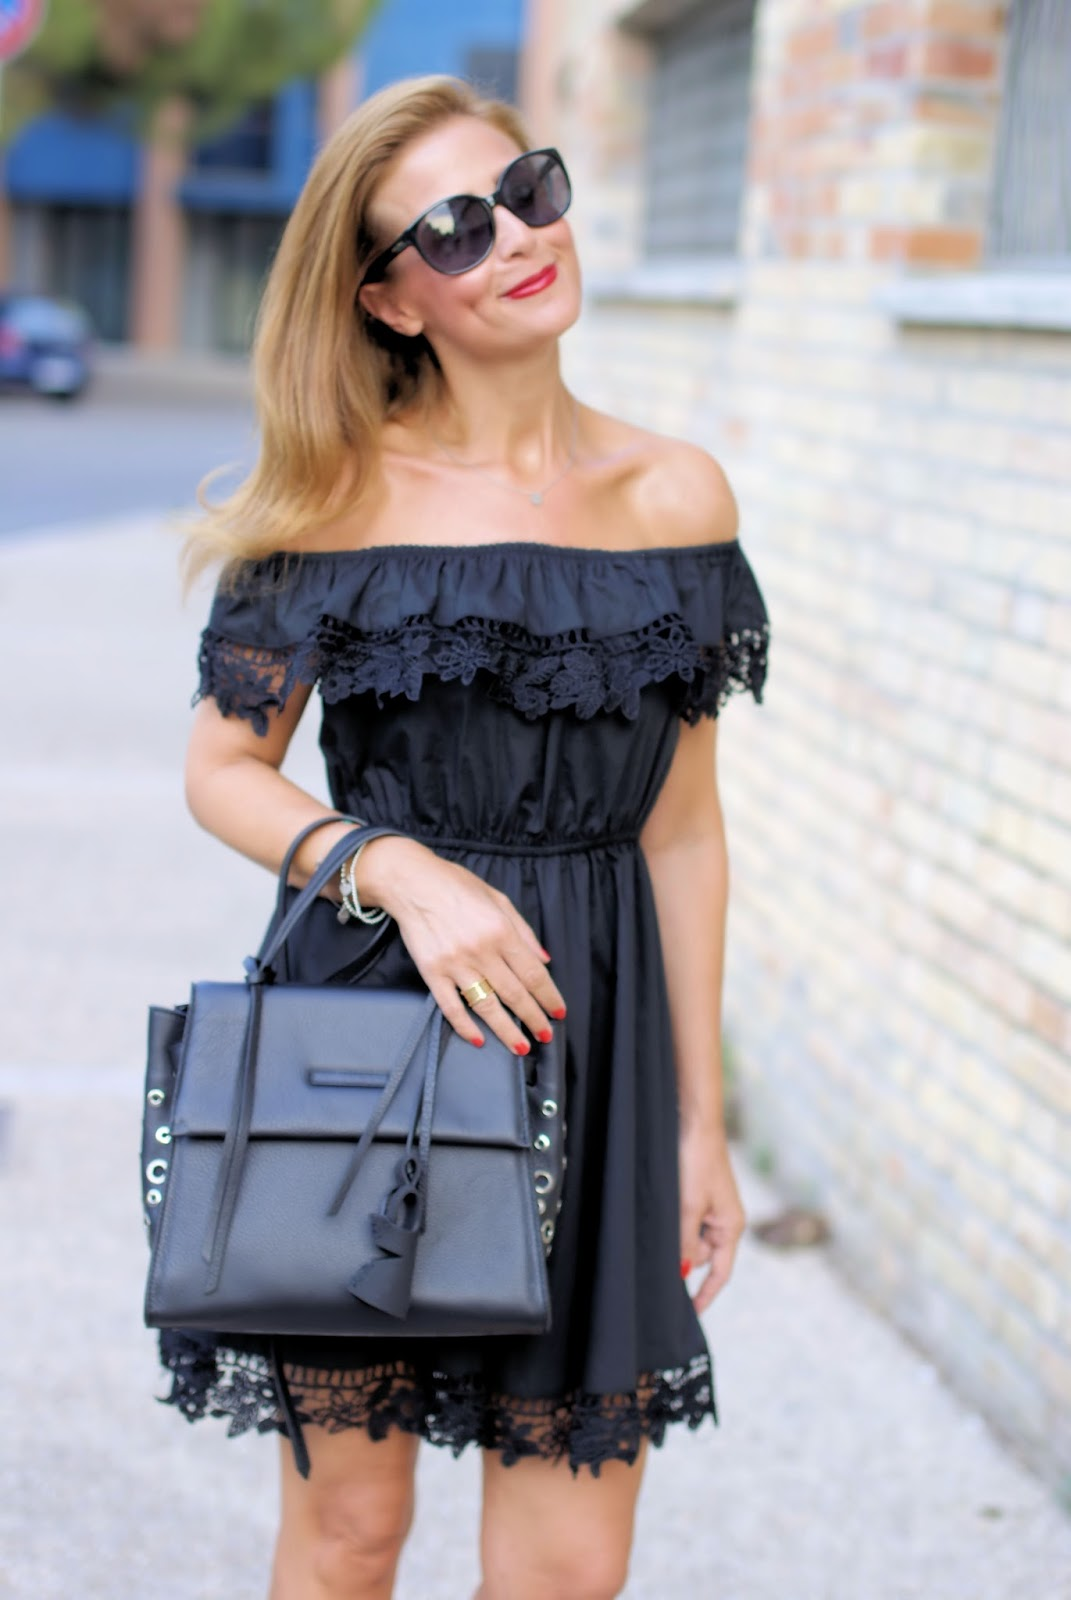 off the shoulder black dress on Fashion and Cookies fashion blog, fashion blogger style